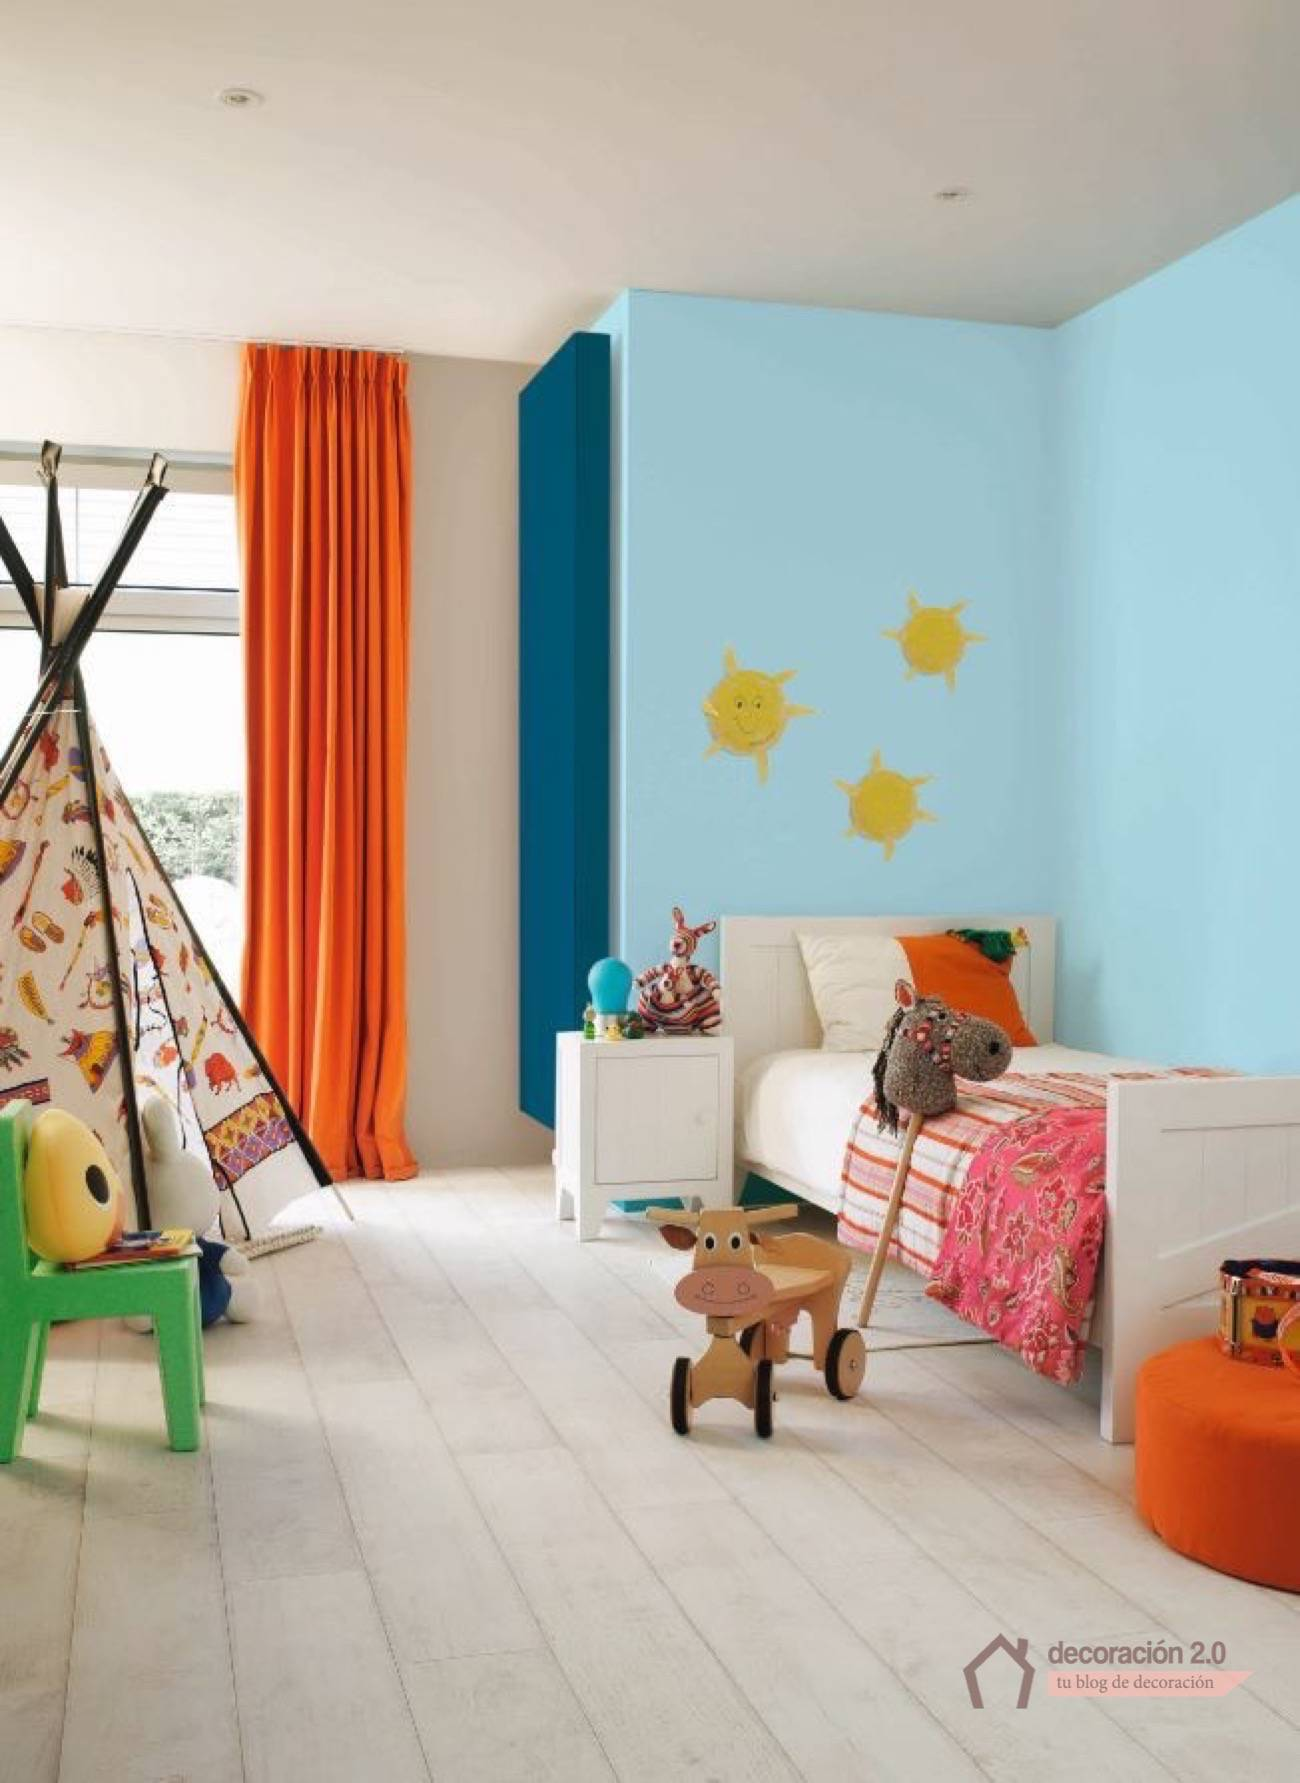 5 ideas diy para decorar nuestras habitaciones infantiles for Ideas decoracion habitacion